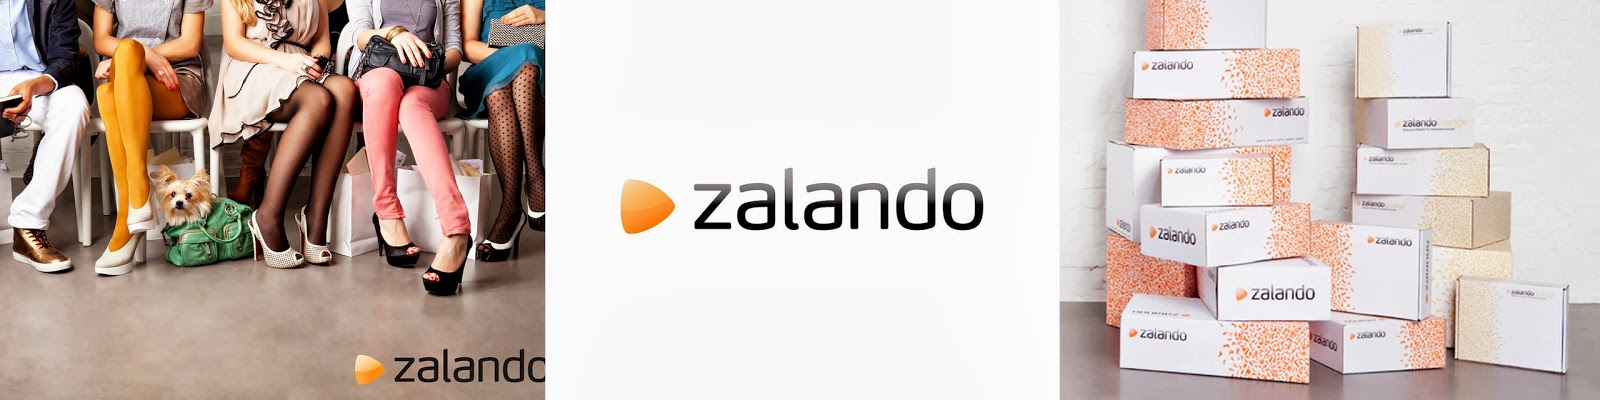 zalando gewinnspiel closed valerielacherie. Black Bedroom Furniture Sets. Home Design Ideas